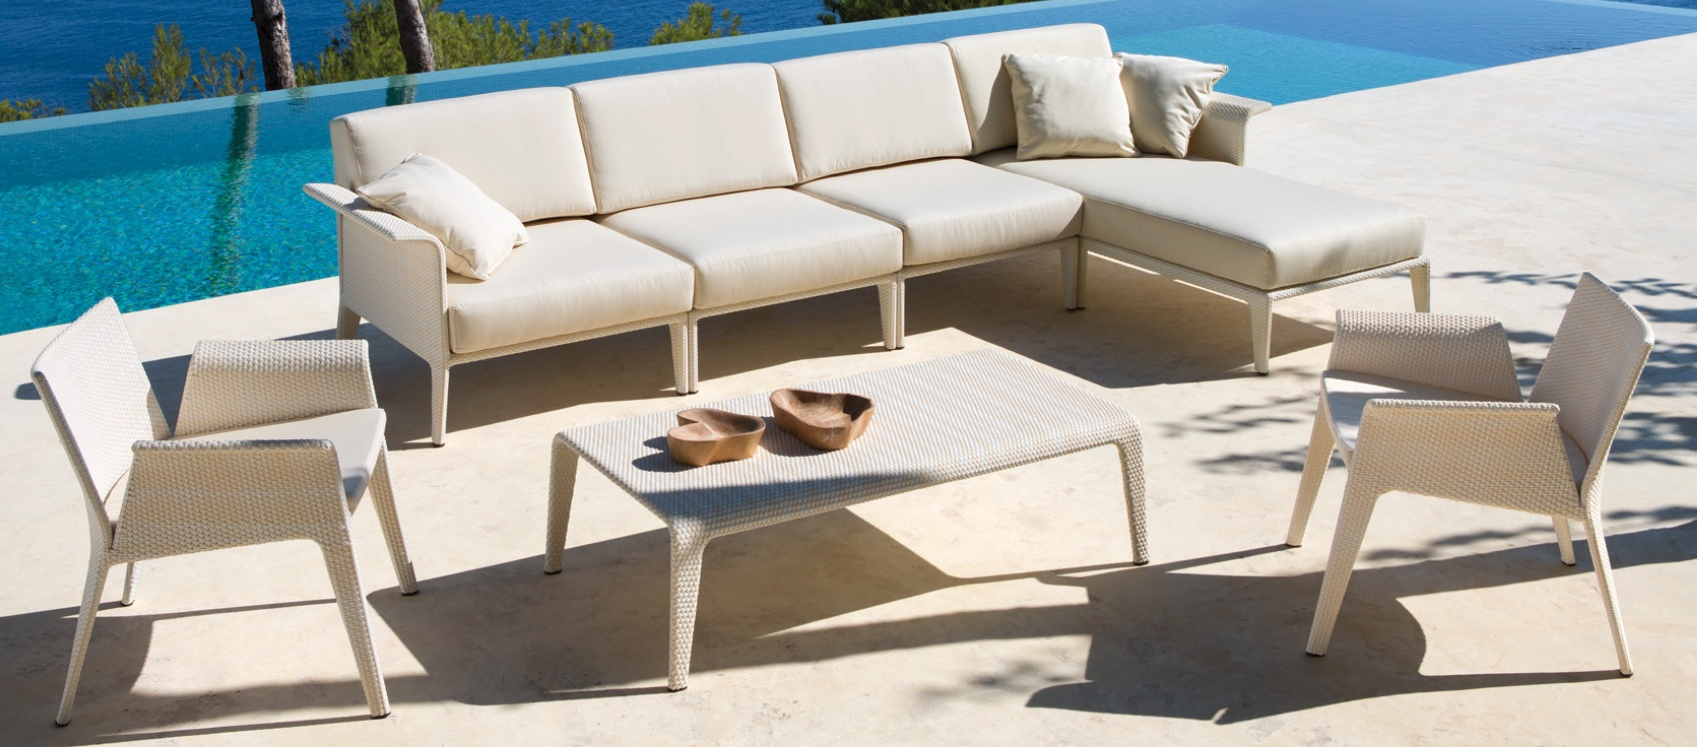 Astrid Wicker Sectional Sofa – Couture Outdoor Throughout Current Astrid Wicker Patio Sofas With Cushions (Gallery 21 of 25)